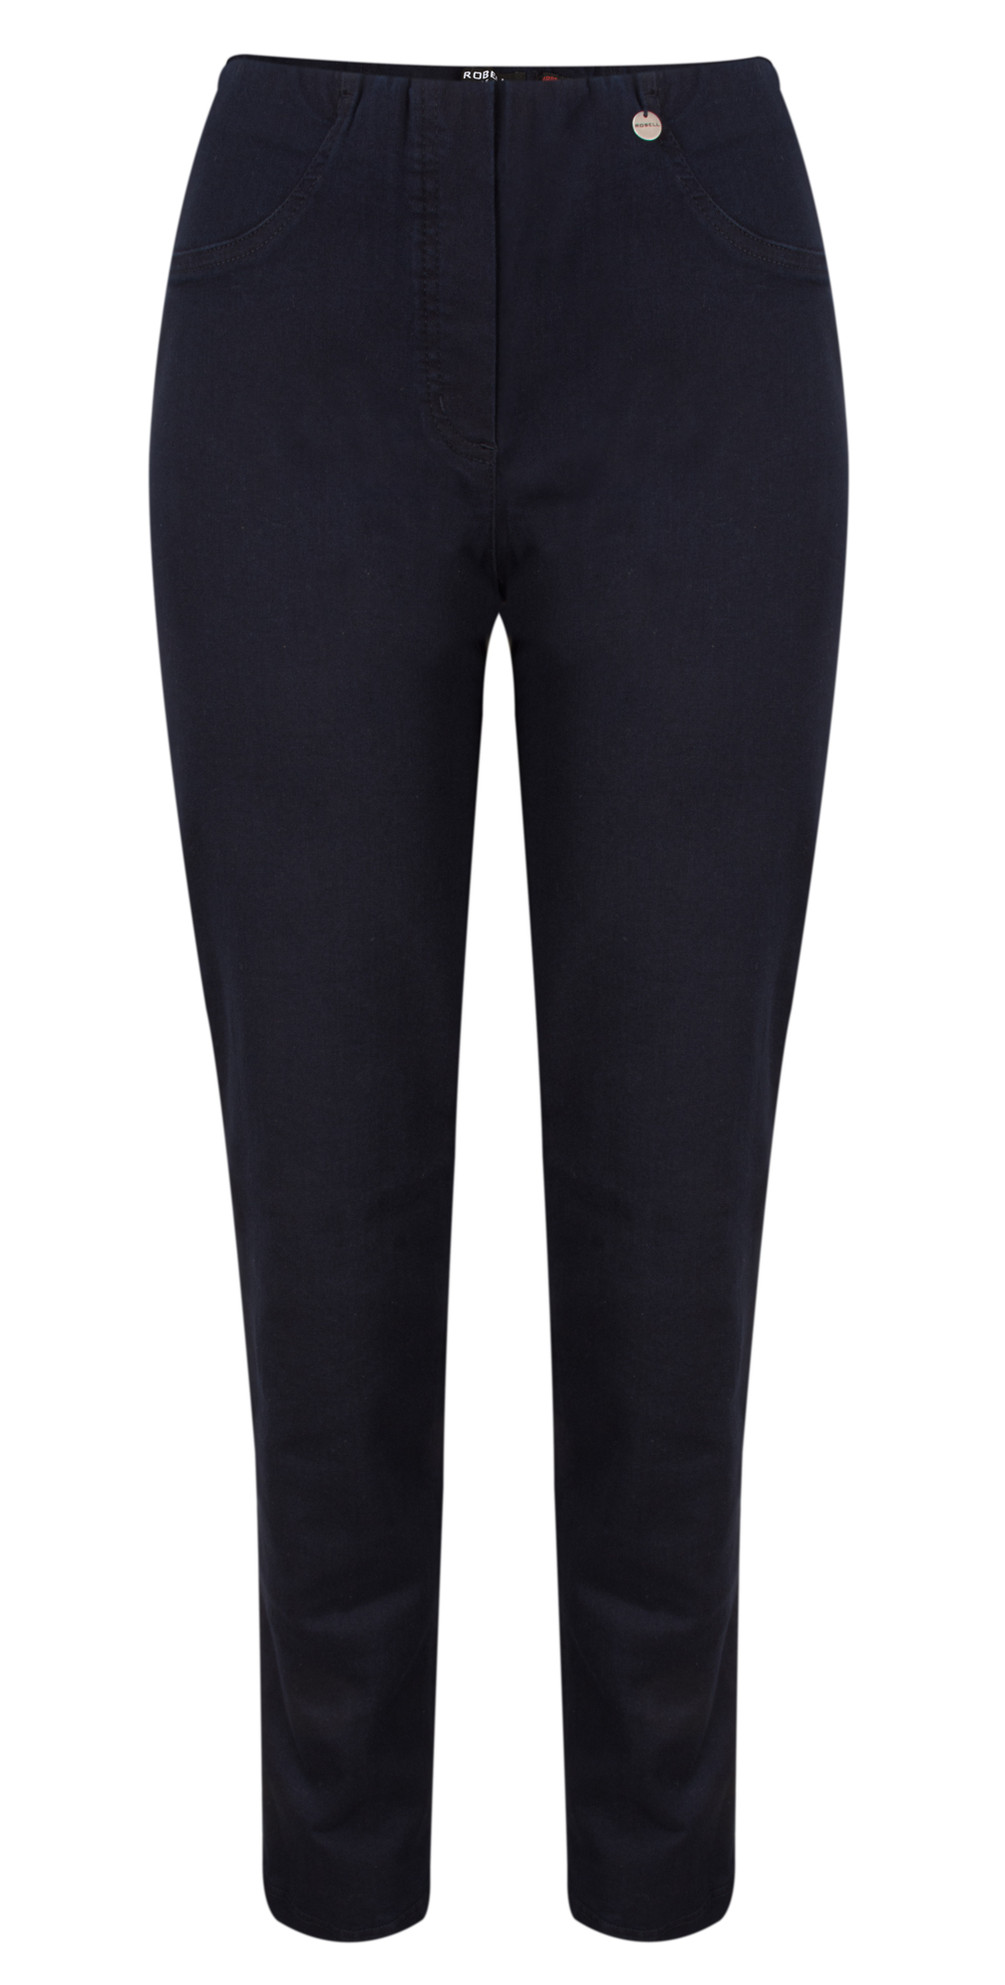 a5cbc716589b Robell Trousers Bella Slim Fit Full Length Jean in Dark Navy